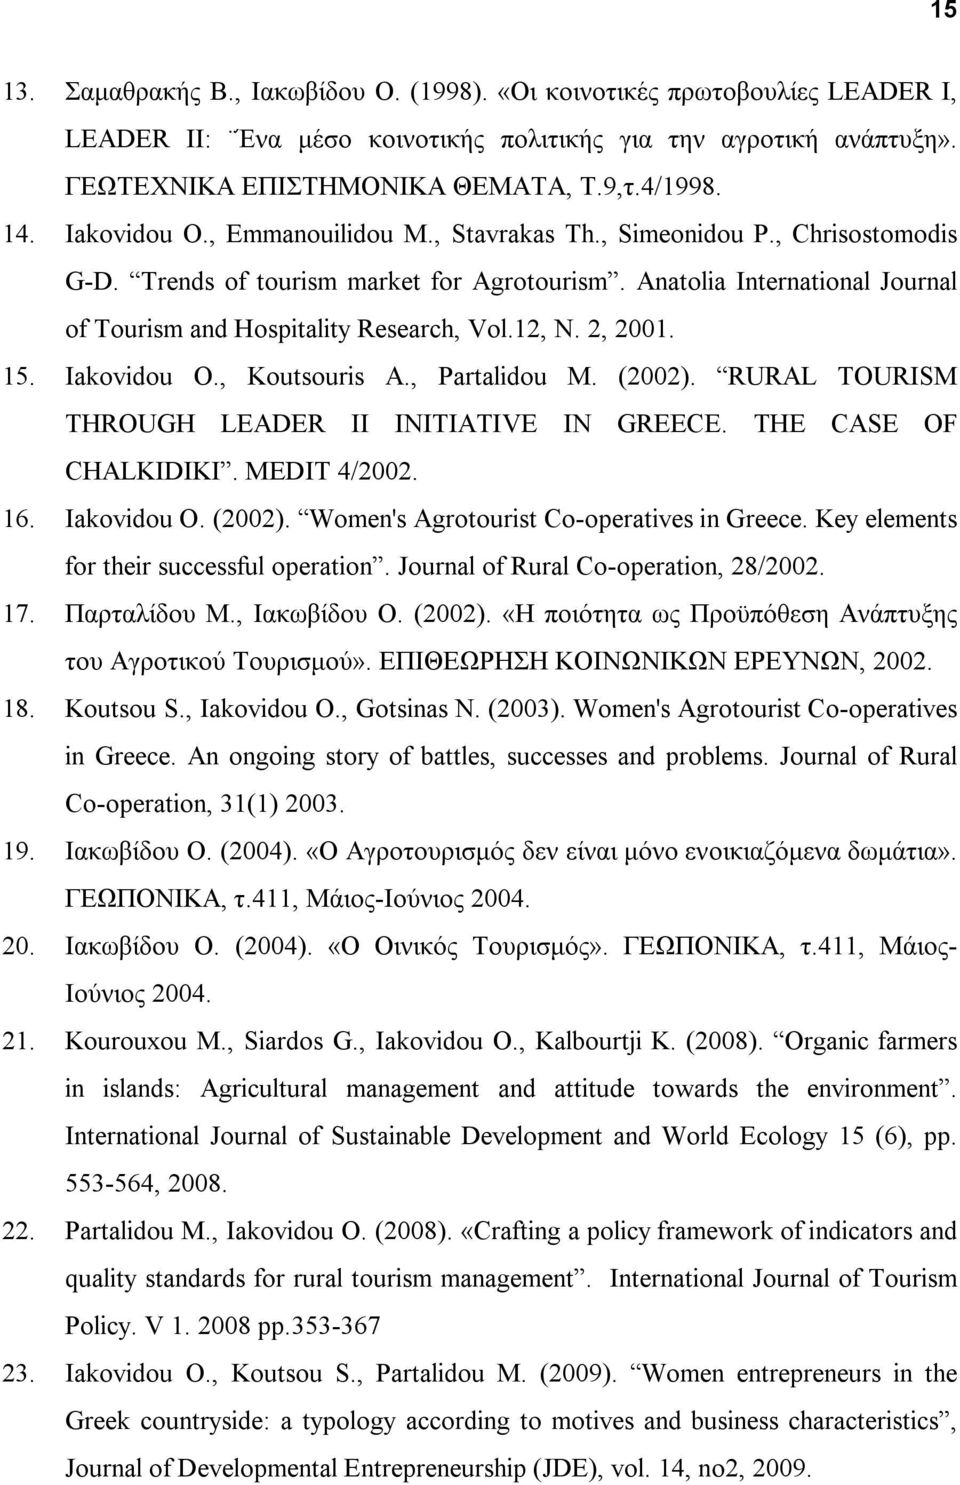 12, N. 2, 2001. 15. Iakovidou O., Koutsouris A., Partalidou M. (2002). RURAL TOURISM THROUGH LEADER II INITIATIVE IN GREECE. THE CASE OF CHALKIDIKI. MEDIT 4/2002. 16. Iakovidou O. (2002). Women's Agrotourist Co-operatives in Greece.